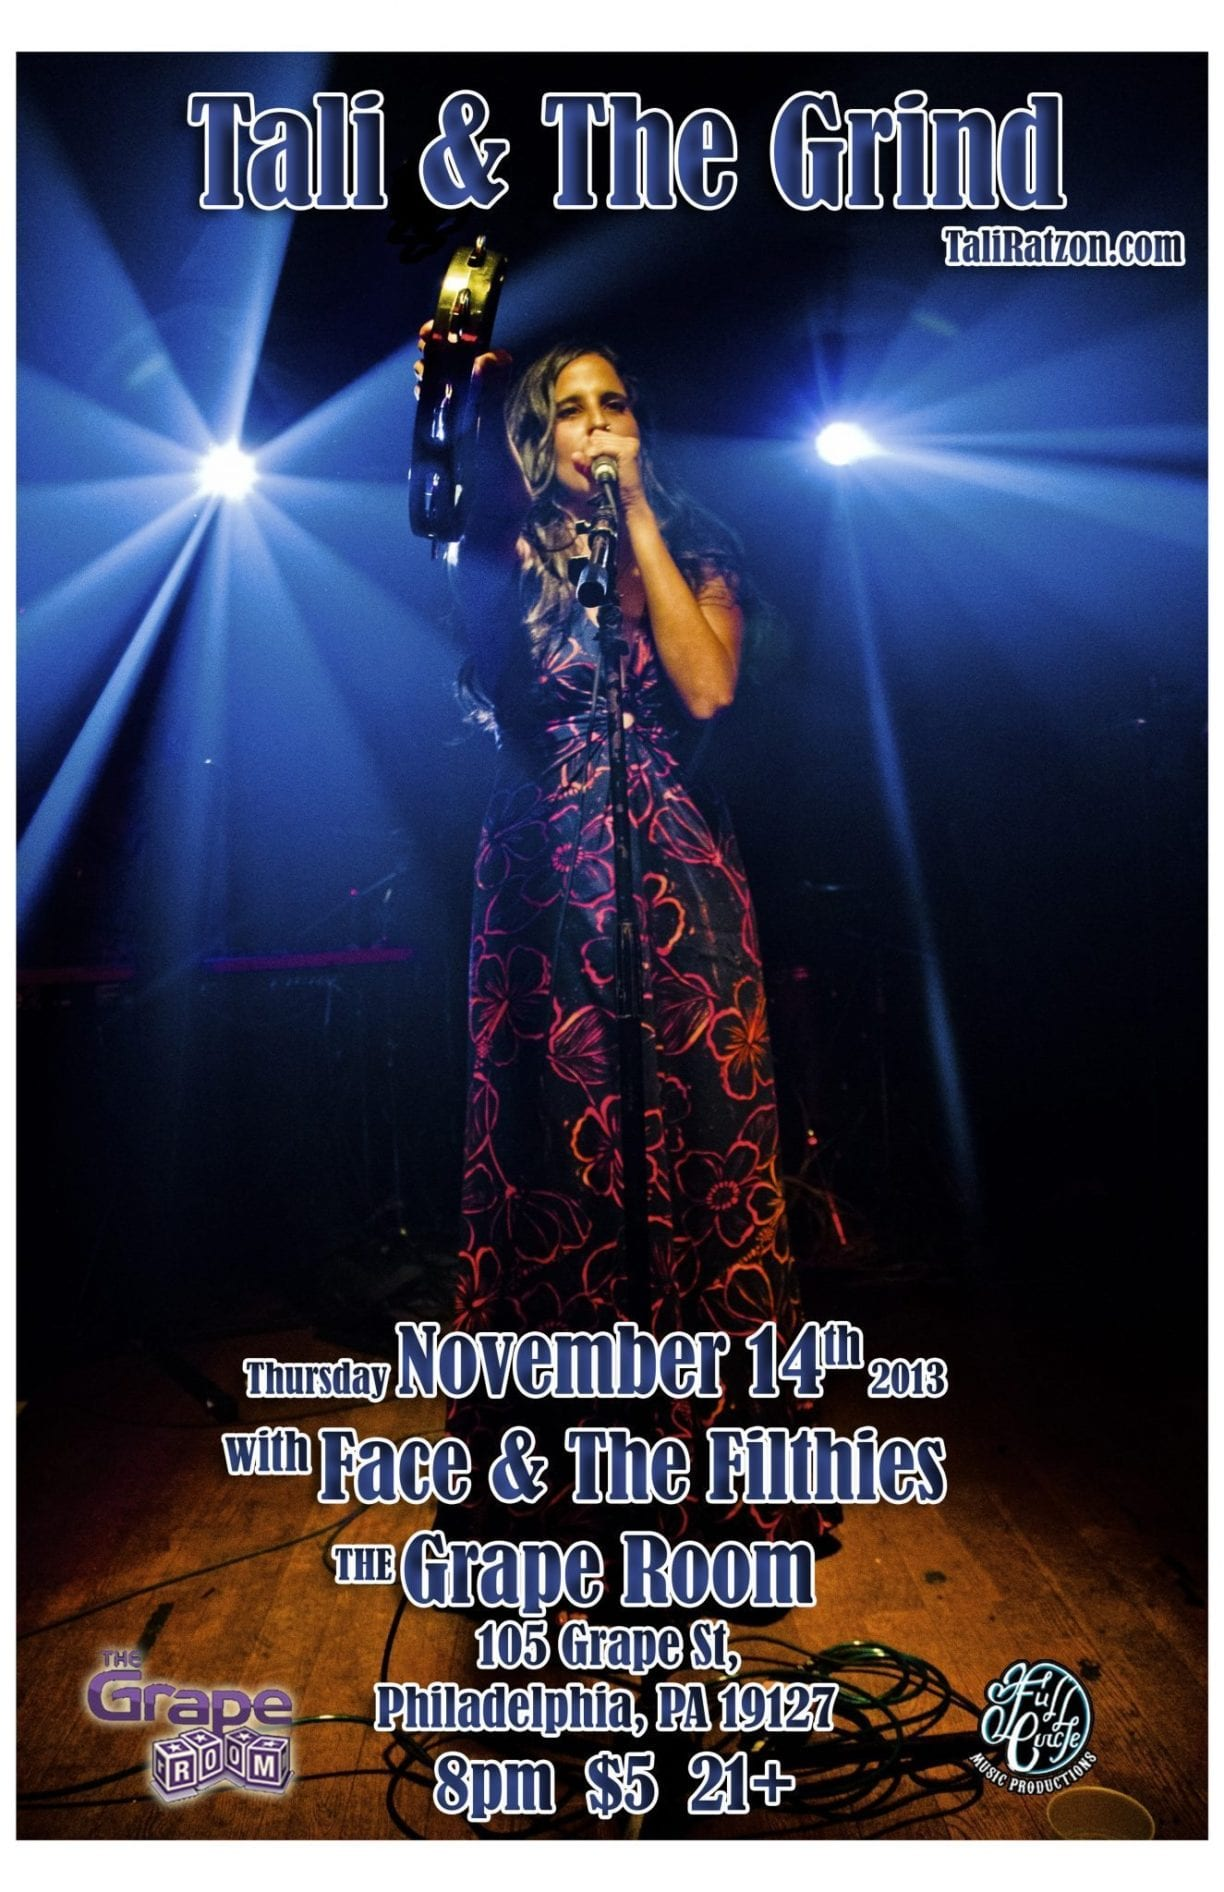 2013-11-14 Tali & The Grind & Face & The Filthies at The Grape Room_11x17 copy